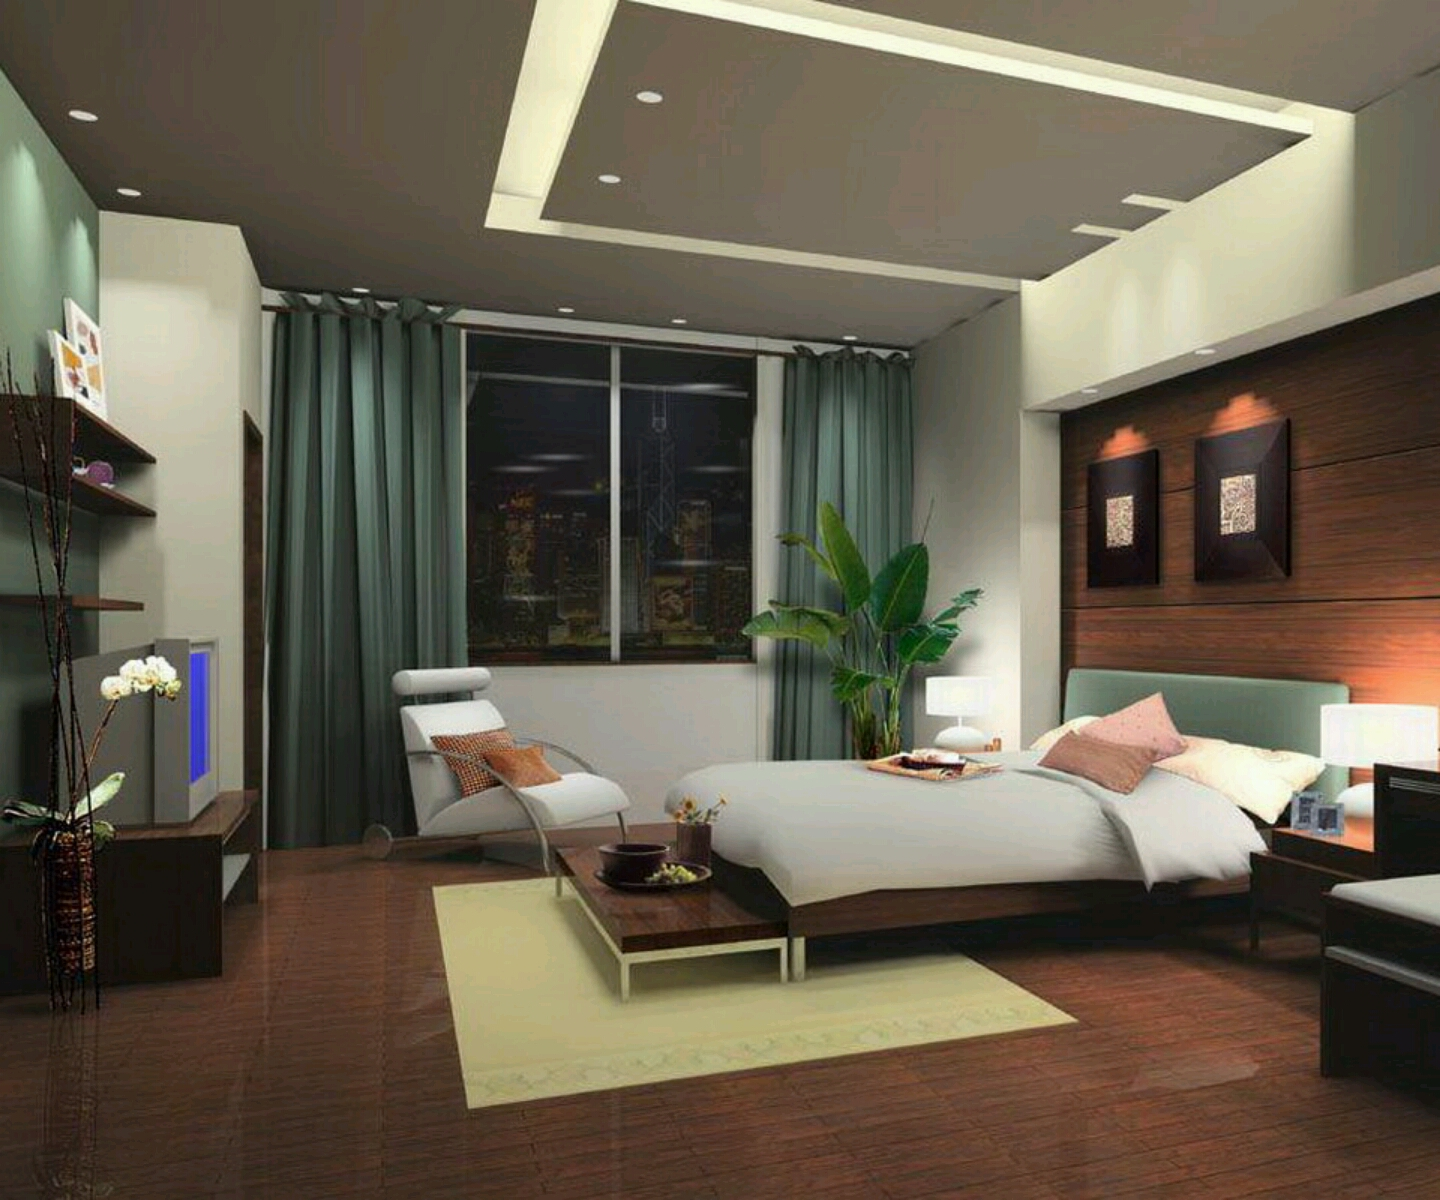 New home designs latest modern bedrooms designs best ideas for Home design ideas